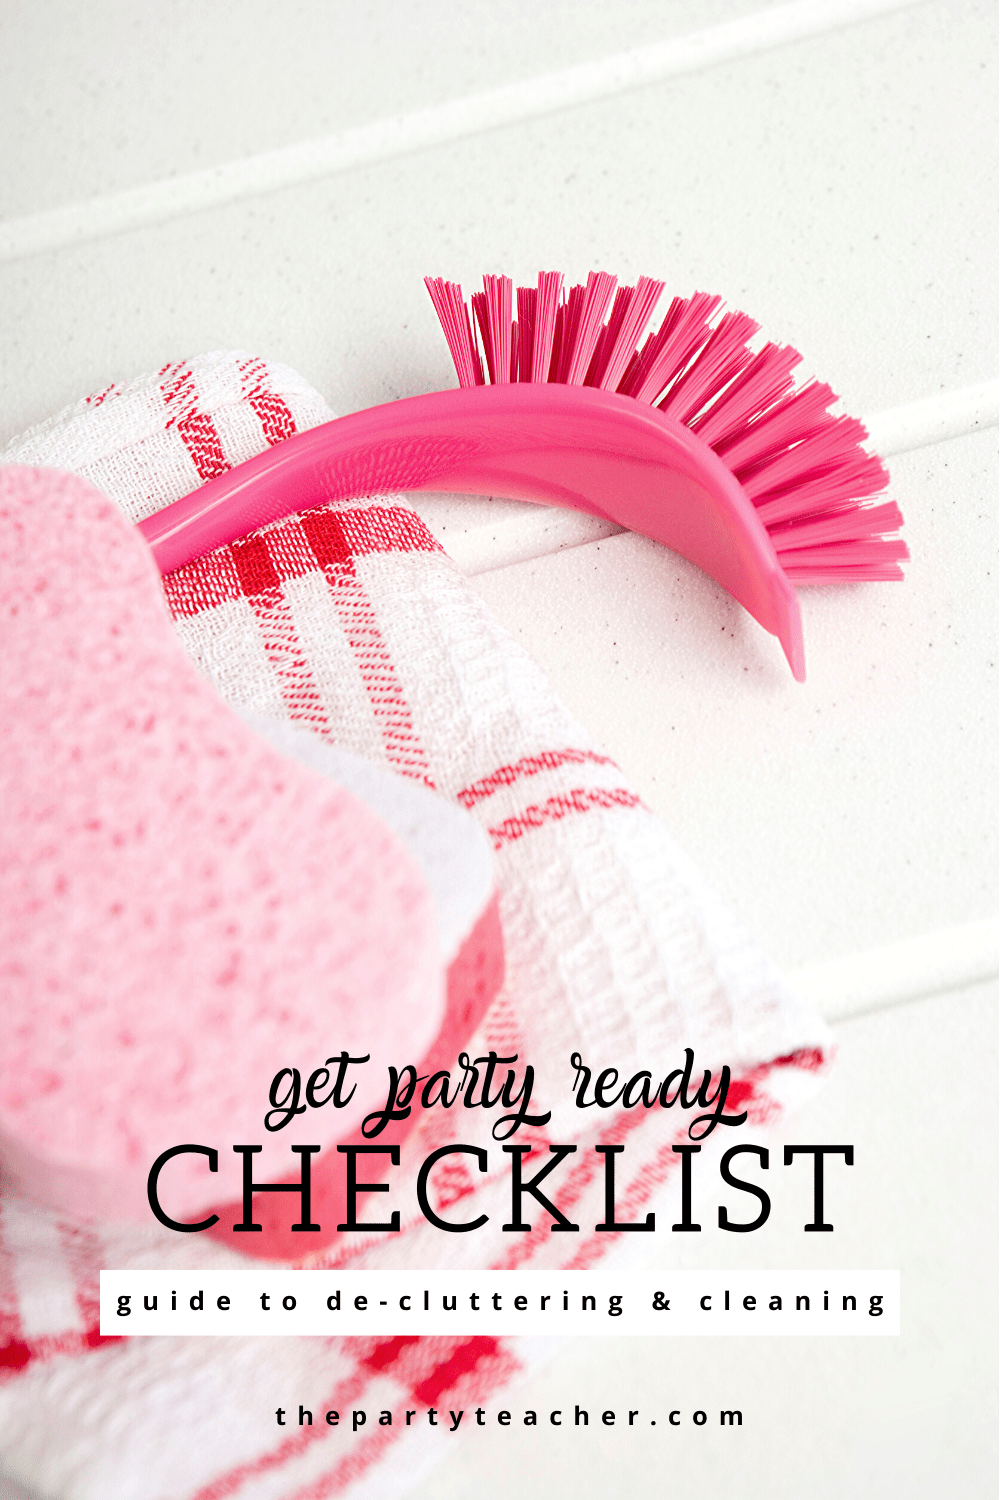 Get party ready checklist - guide to decluttering cleaning - The Party Teacher